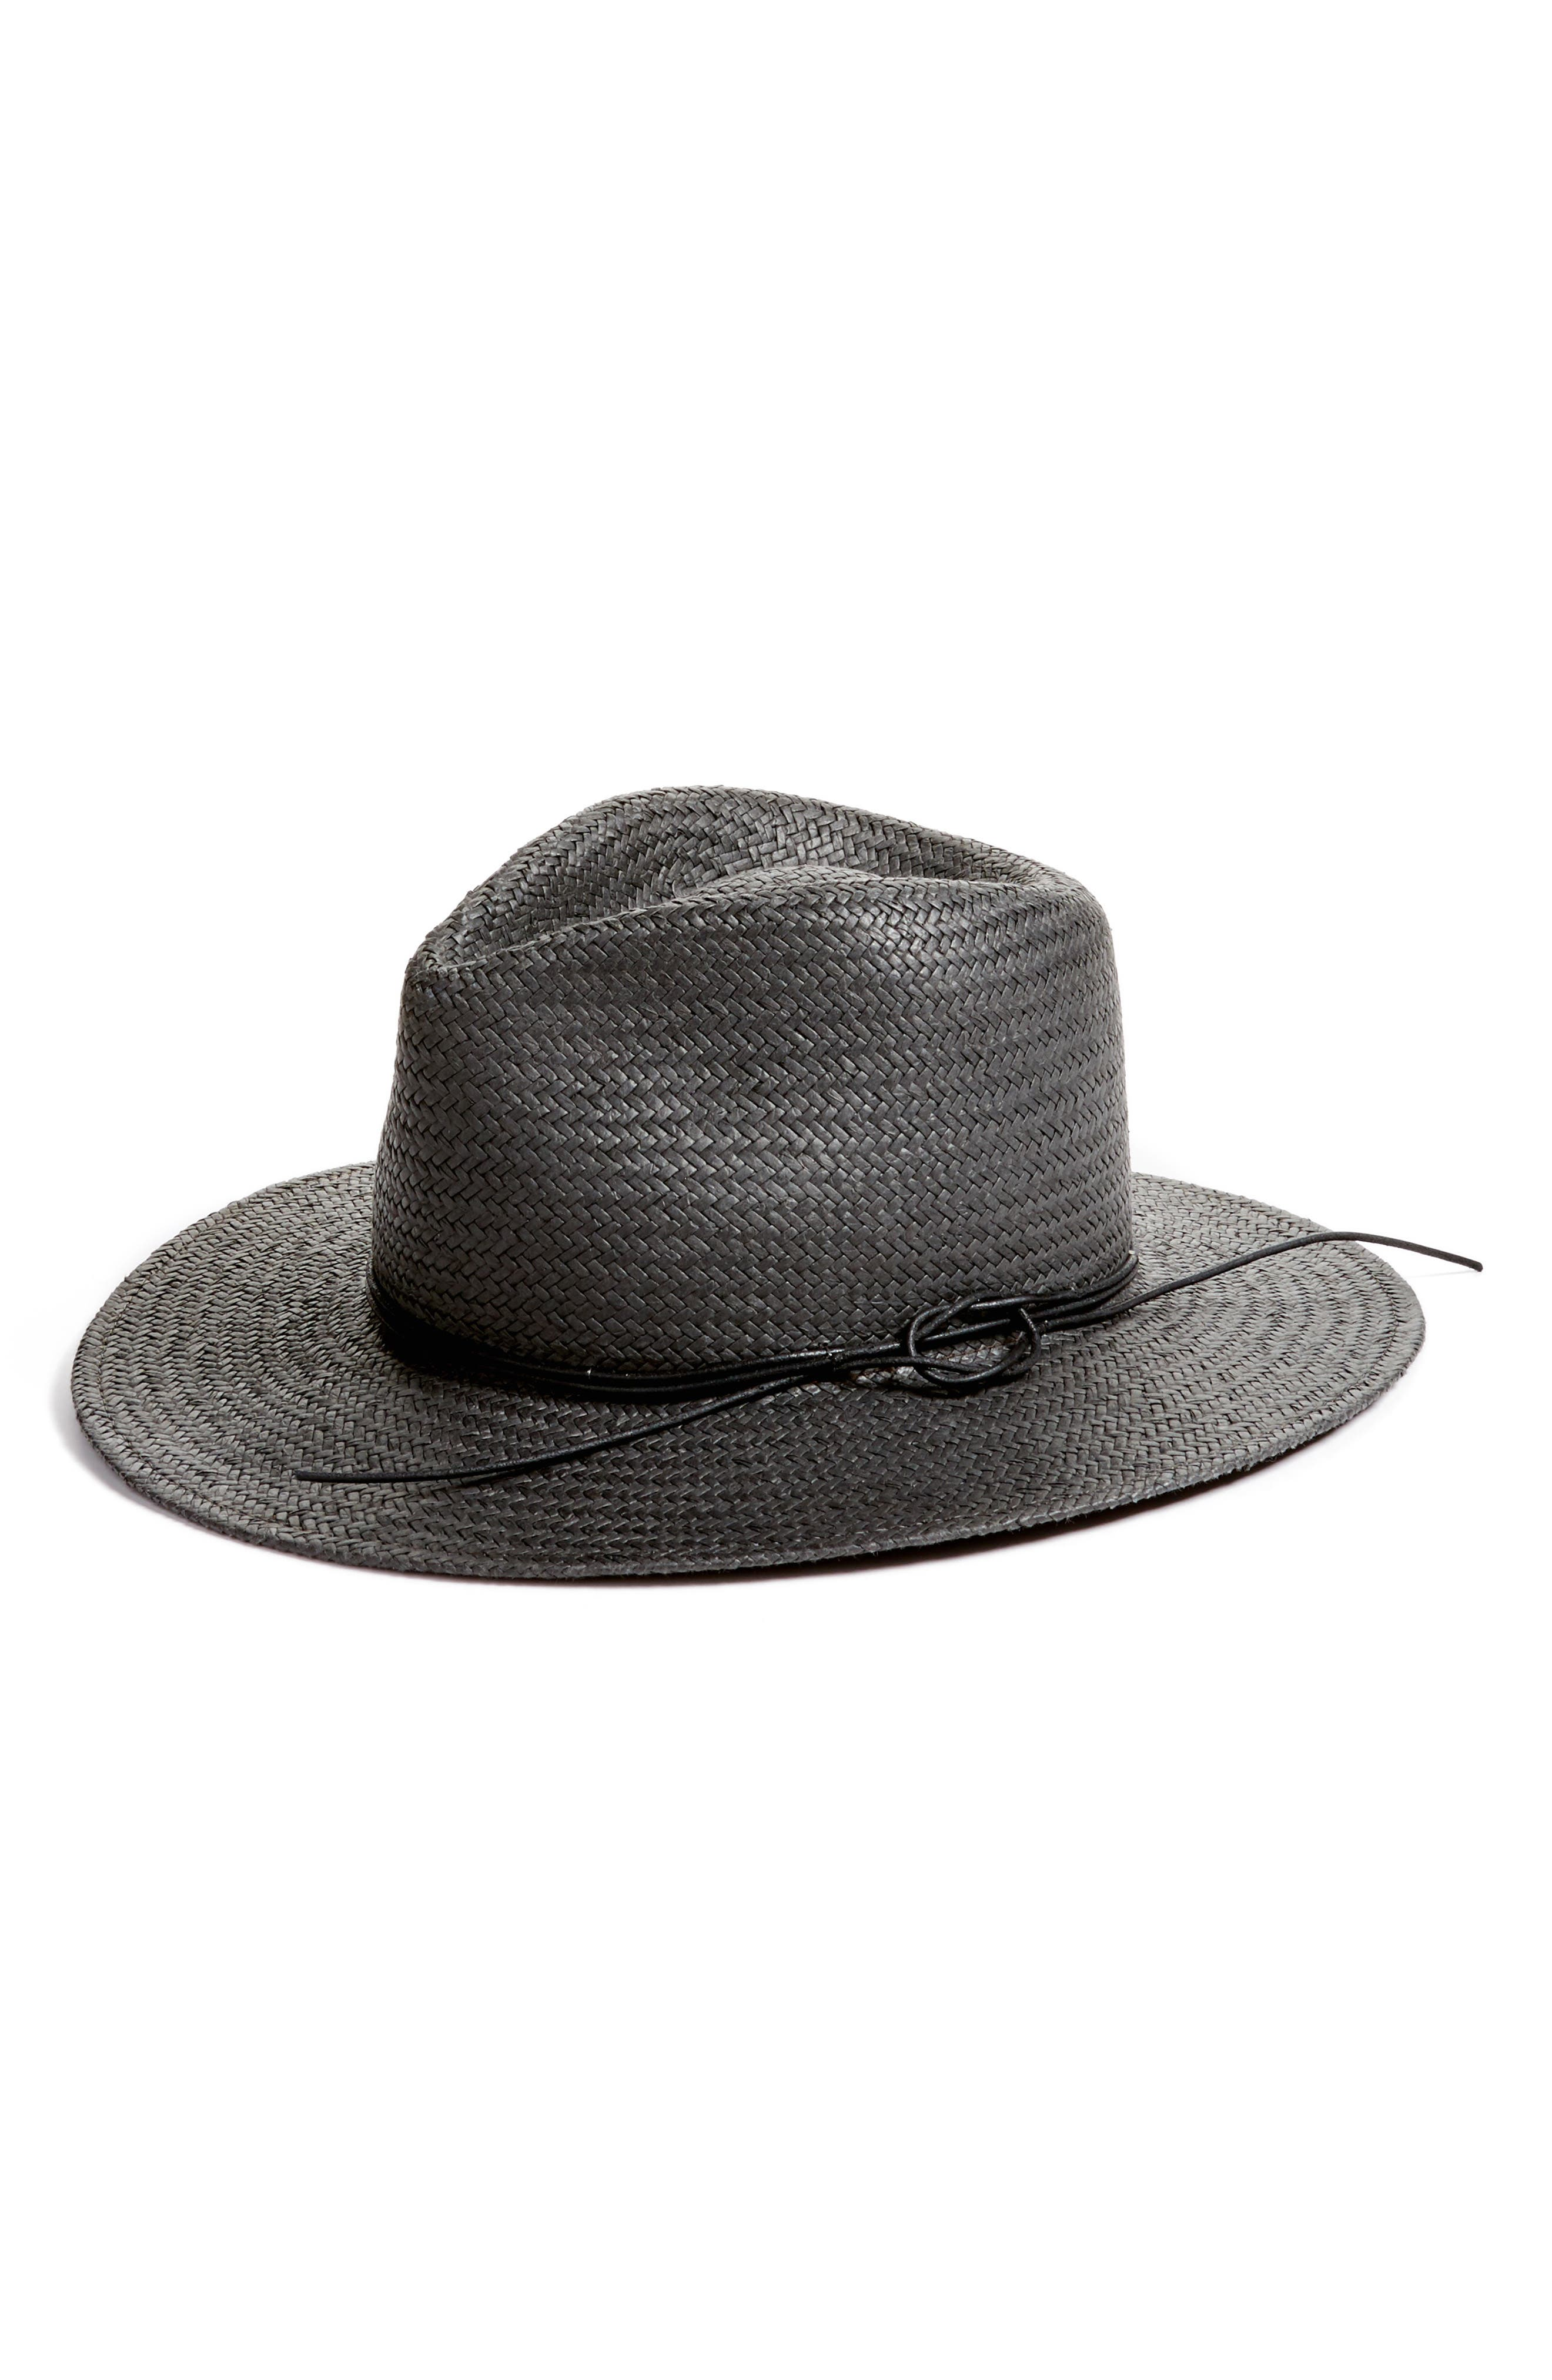 Packable Straw Fedora,                             Main thumbnail 1, color,                             001